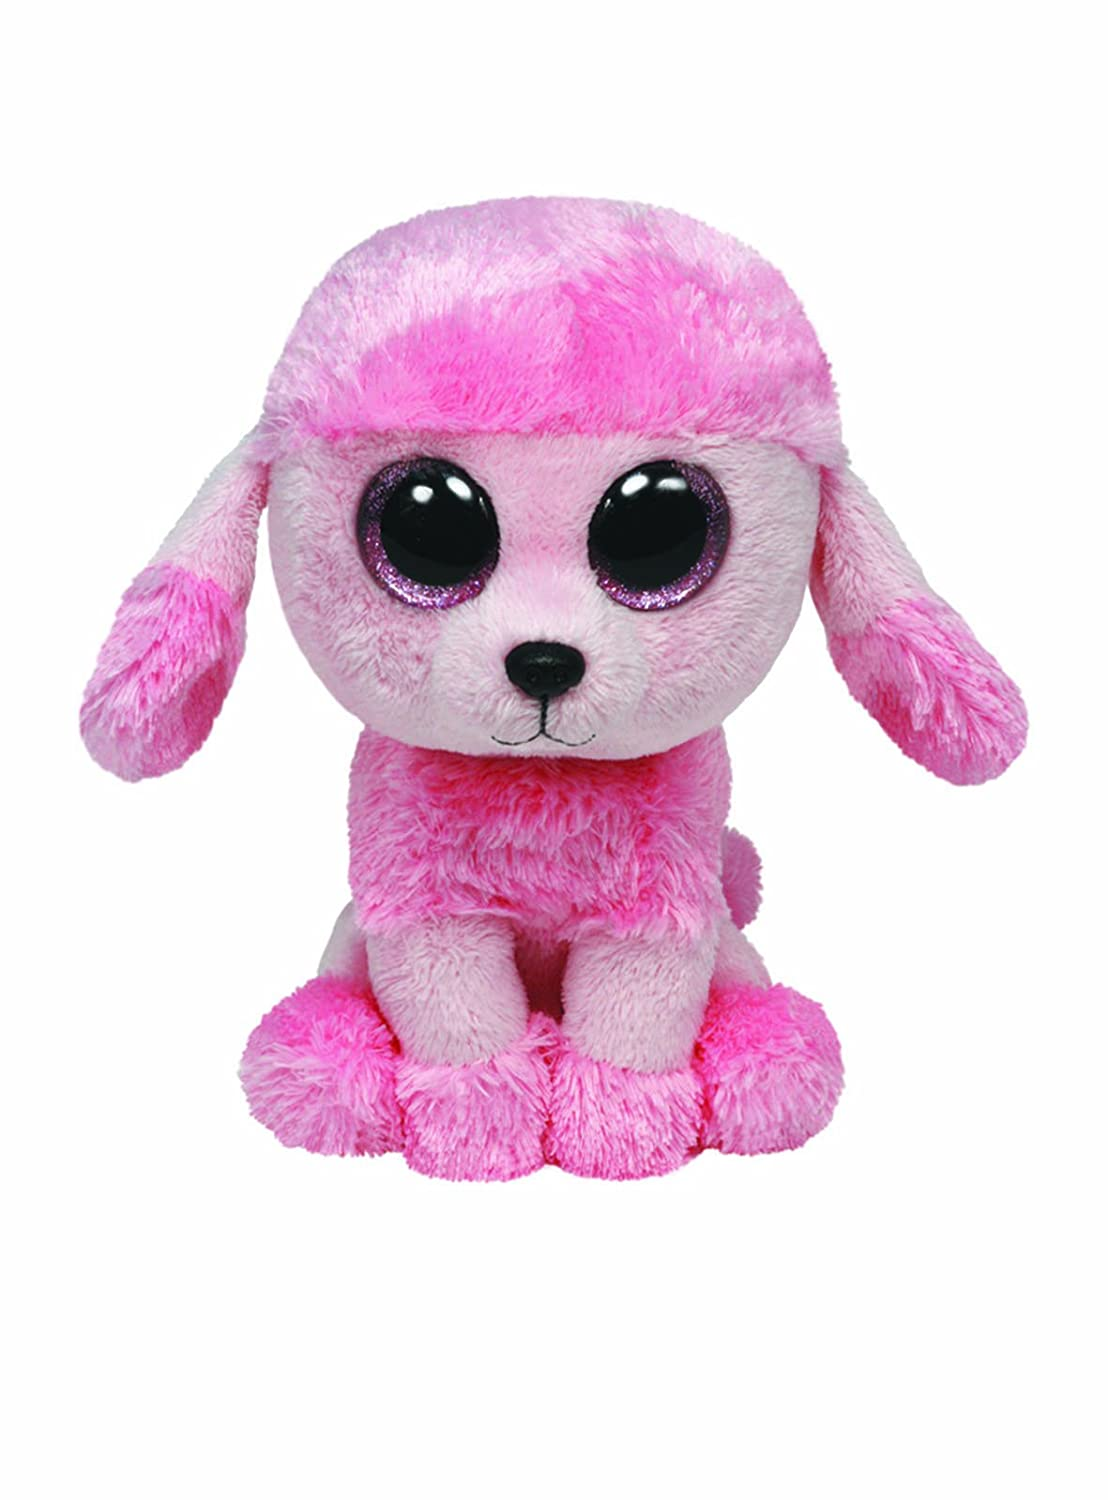 ad72ad9bb86 Amazon.com  Ty Beanie Boos - Princess the Poodle  Toys   Games